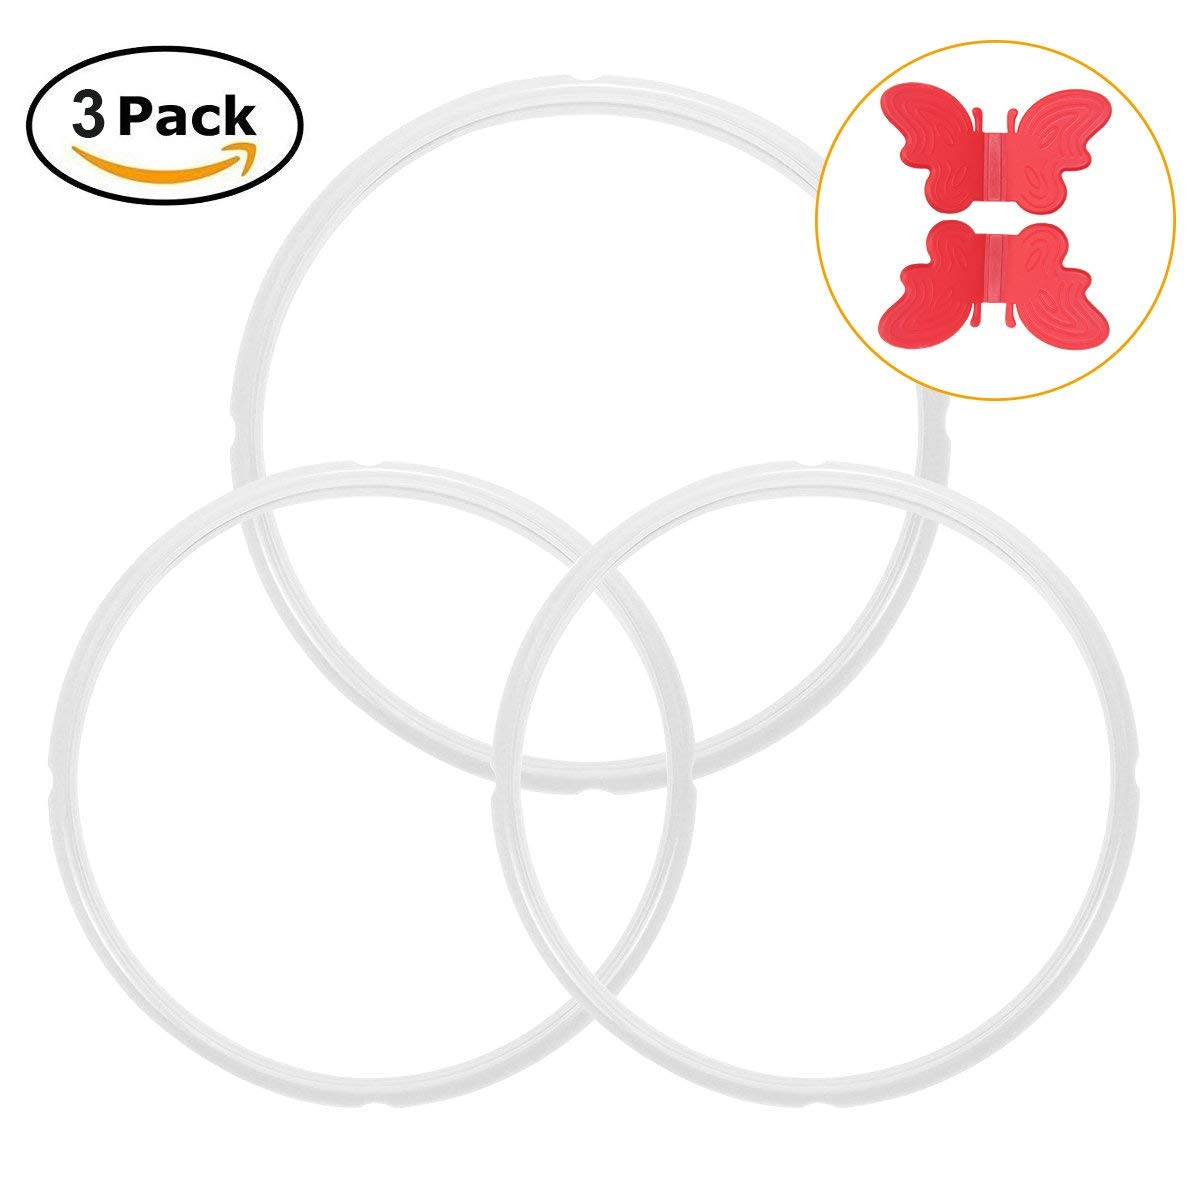 Silicone Sealing Ring Seal for Instant Pot 6 or 8 Quart Gasket Accessories Replace for Instant Pot Ring BPA-free Pack of 3 with Free Silicone Anti-scald Plate Clamp(2pcs-6qt&1pc-8 qt)